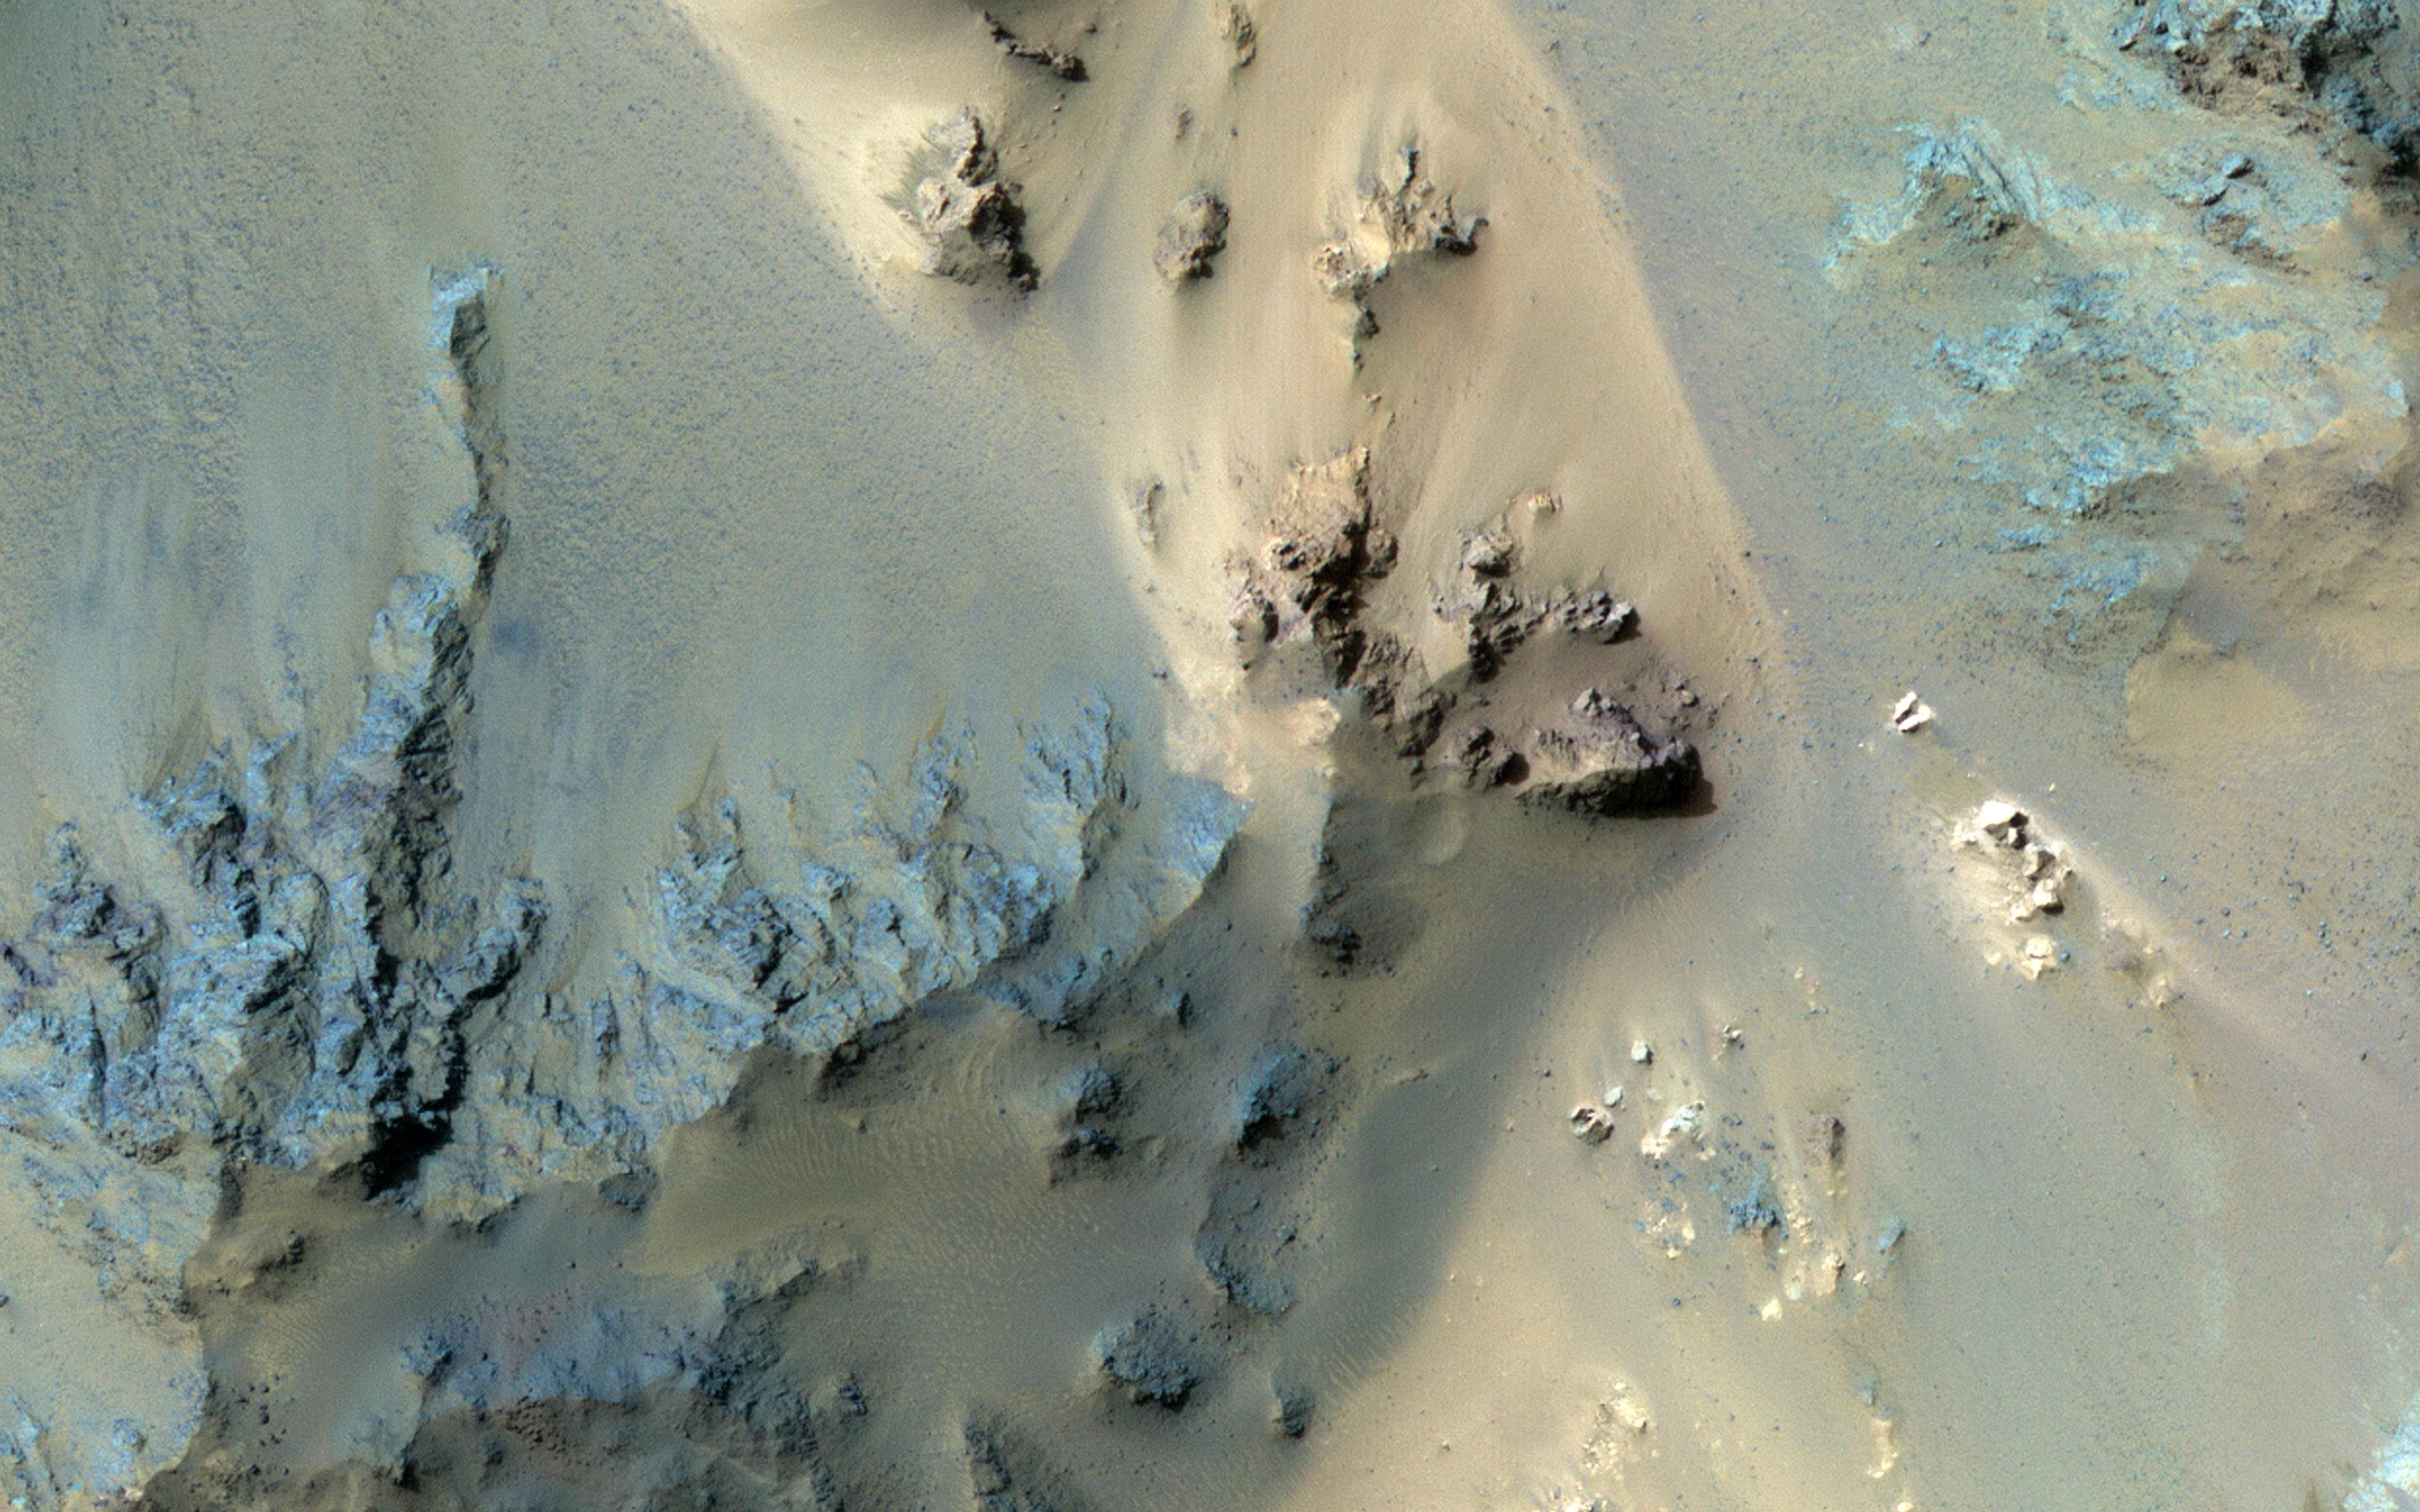 This image acquired on January 27, 2019 by NASAs Mars Reconnaissance Orbiter, shows the extensive central peak complex of Hale Crater.